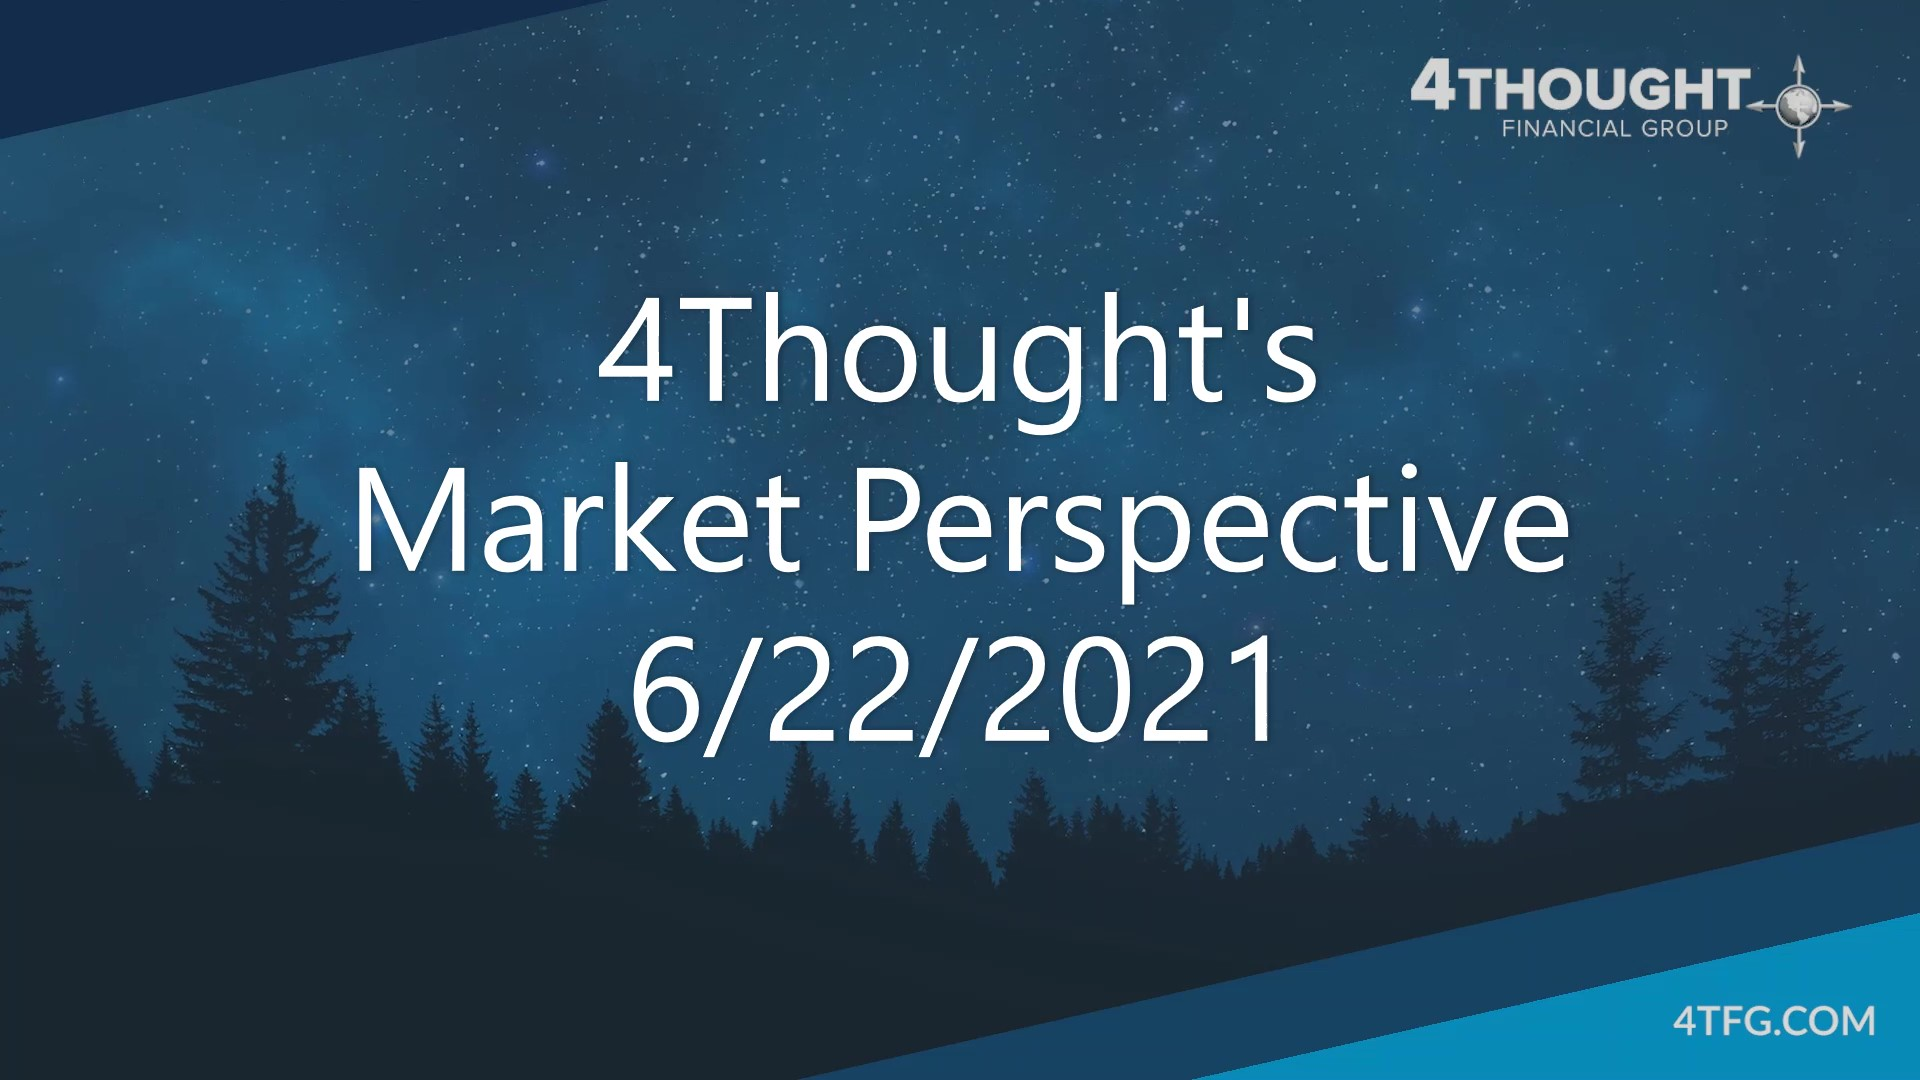 4Thought's Market Perspective 6-22-21